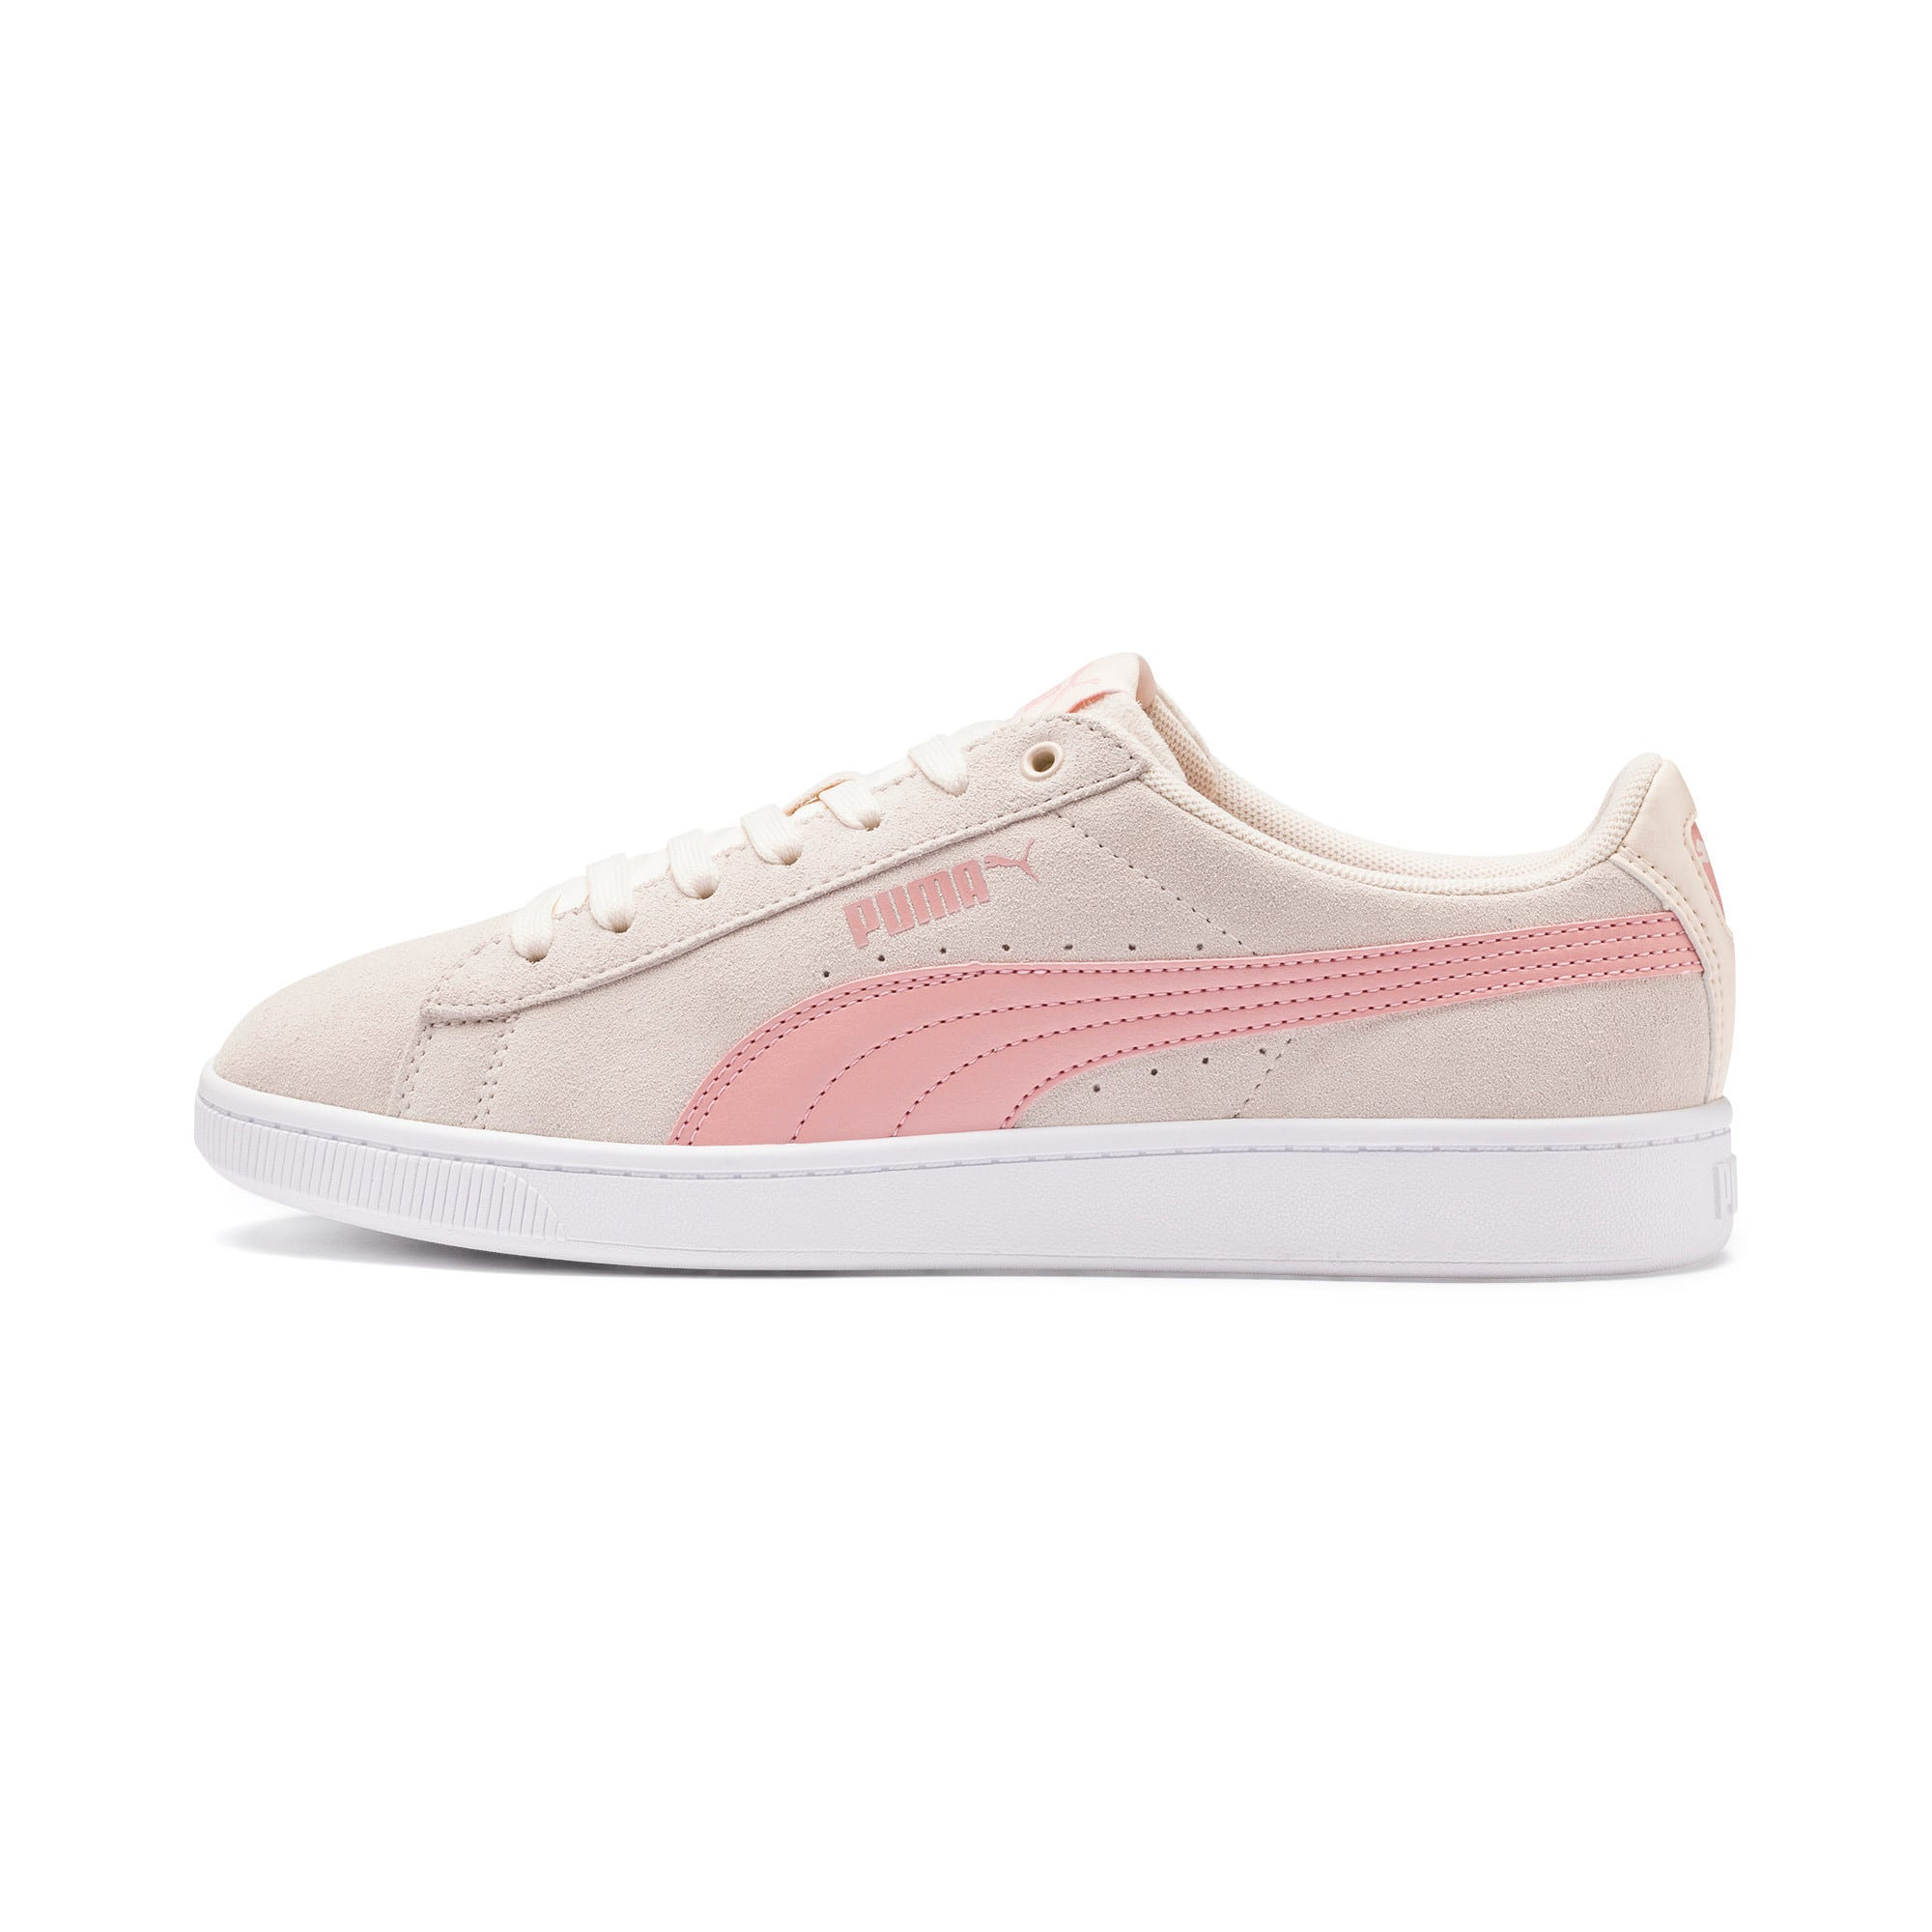 Thumbnail 1 of PUMA Vikky v2 Women's Sneakers, P Parchment-B Rose-White, medium